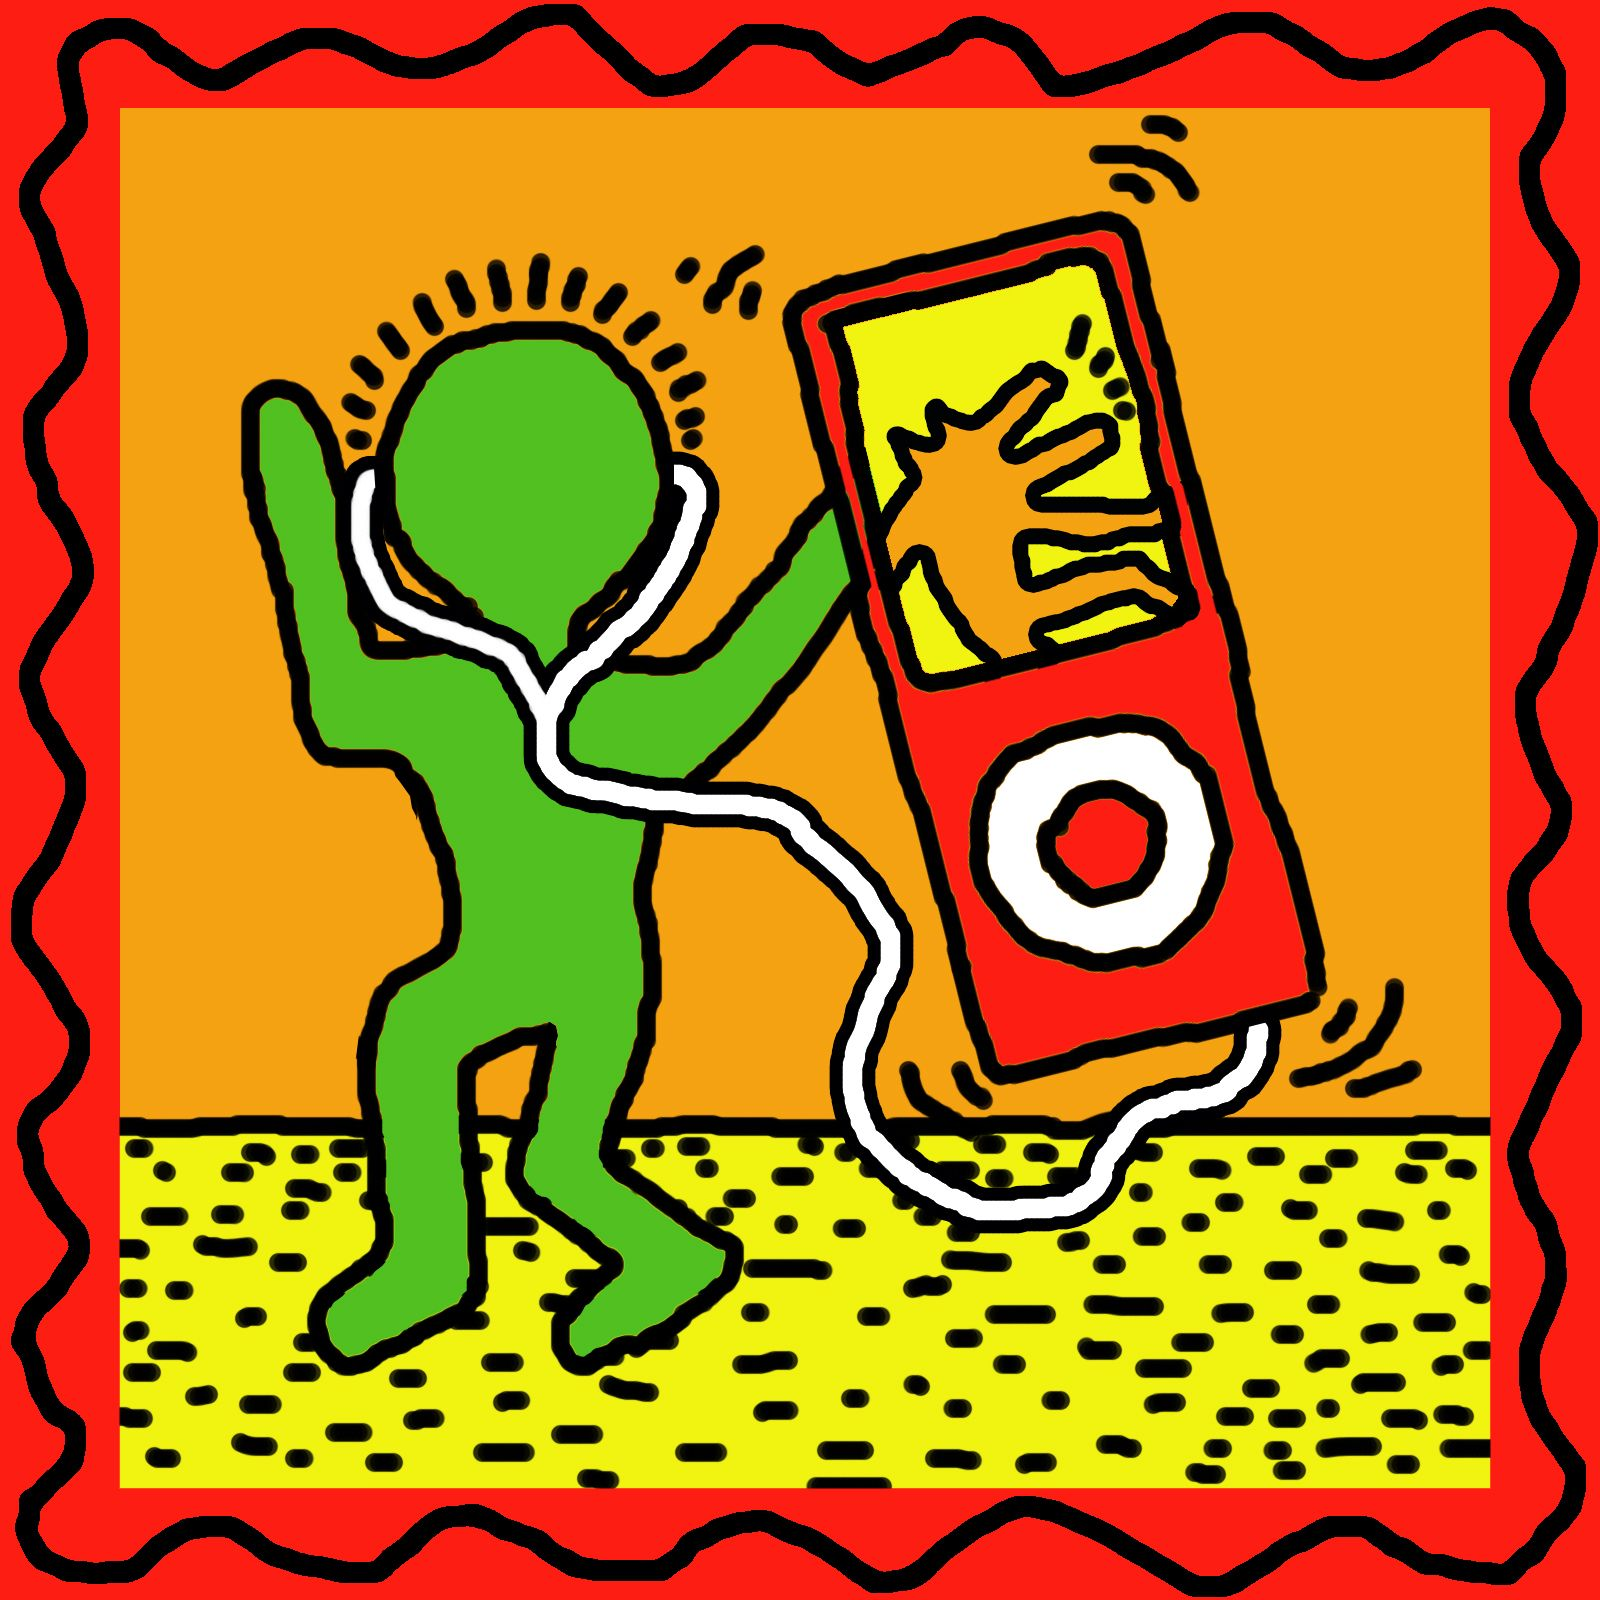 Keith Haring Man and Ipod, This Could Defiantly Could Be a Contour ...